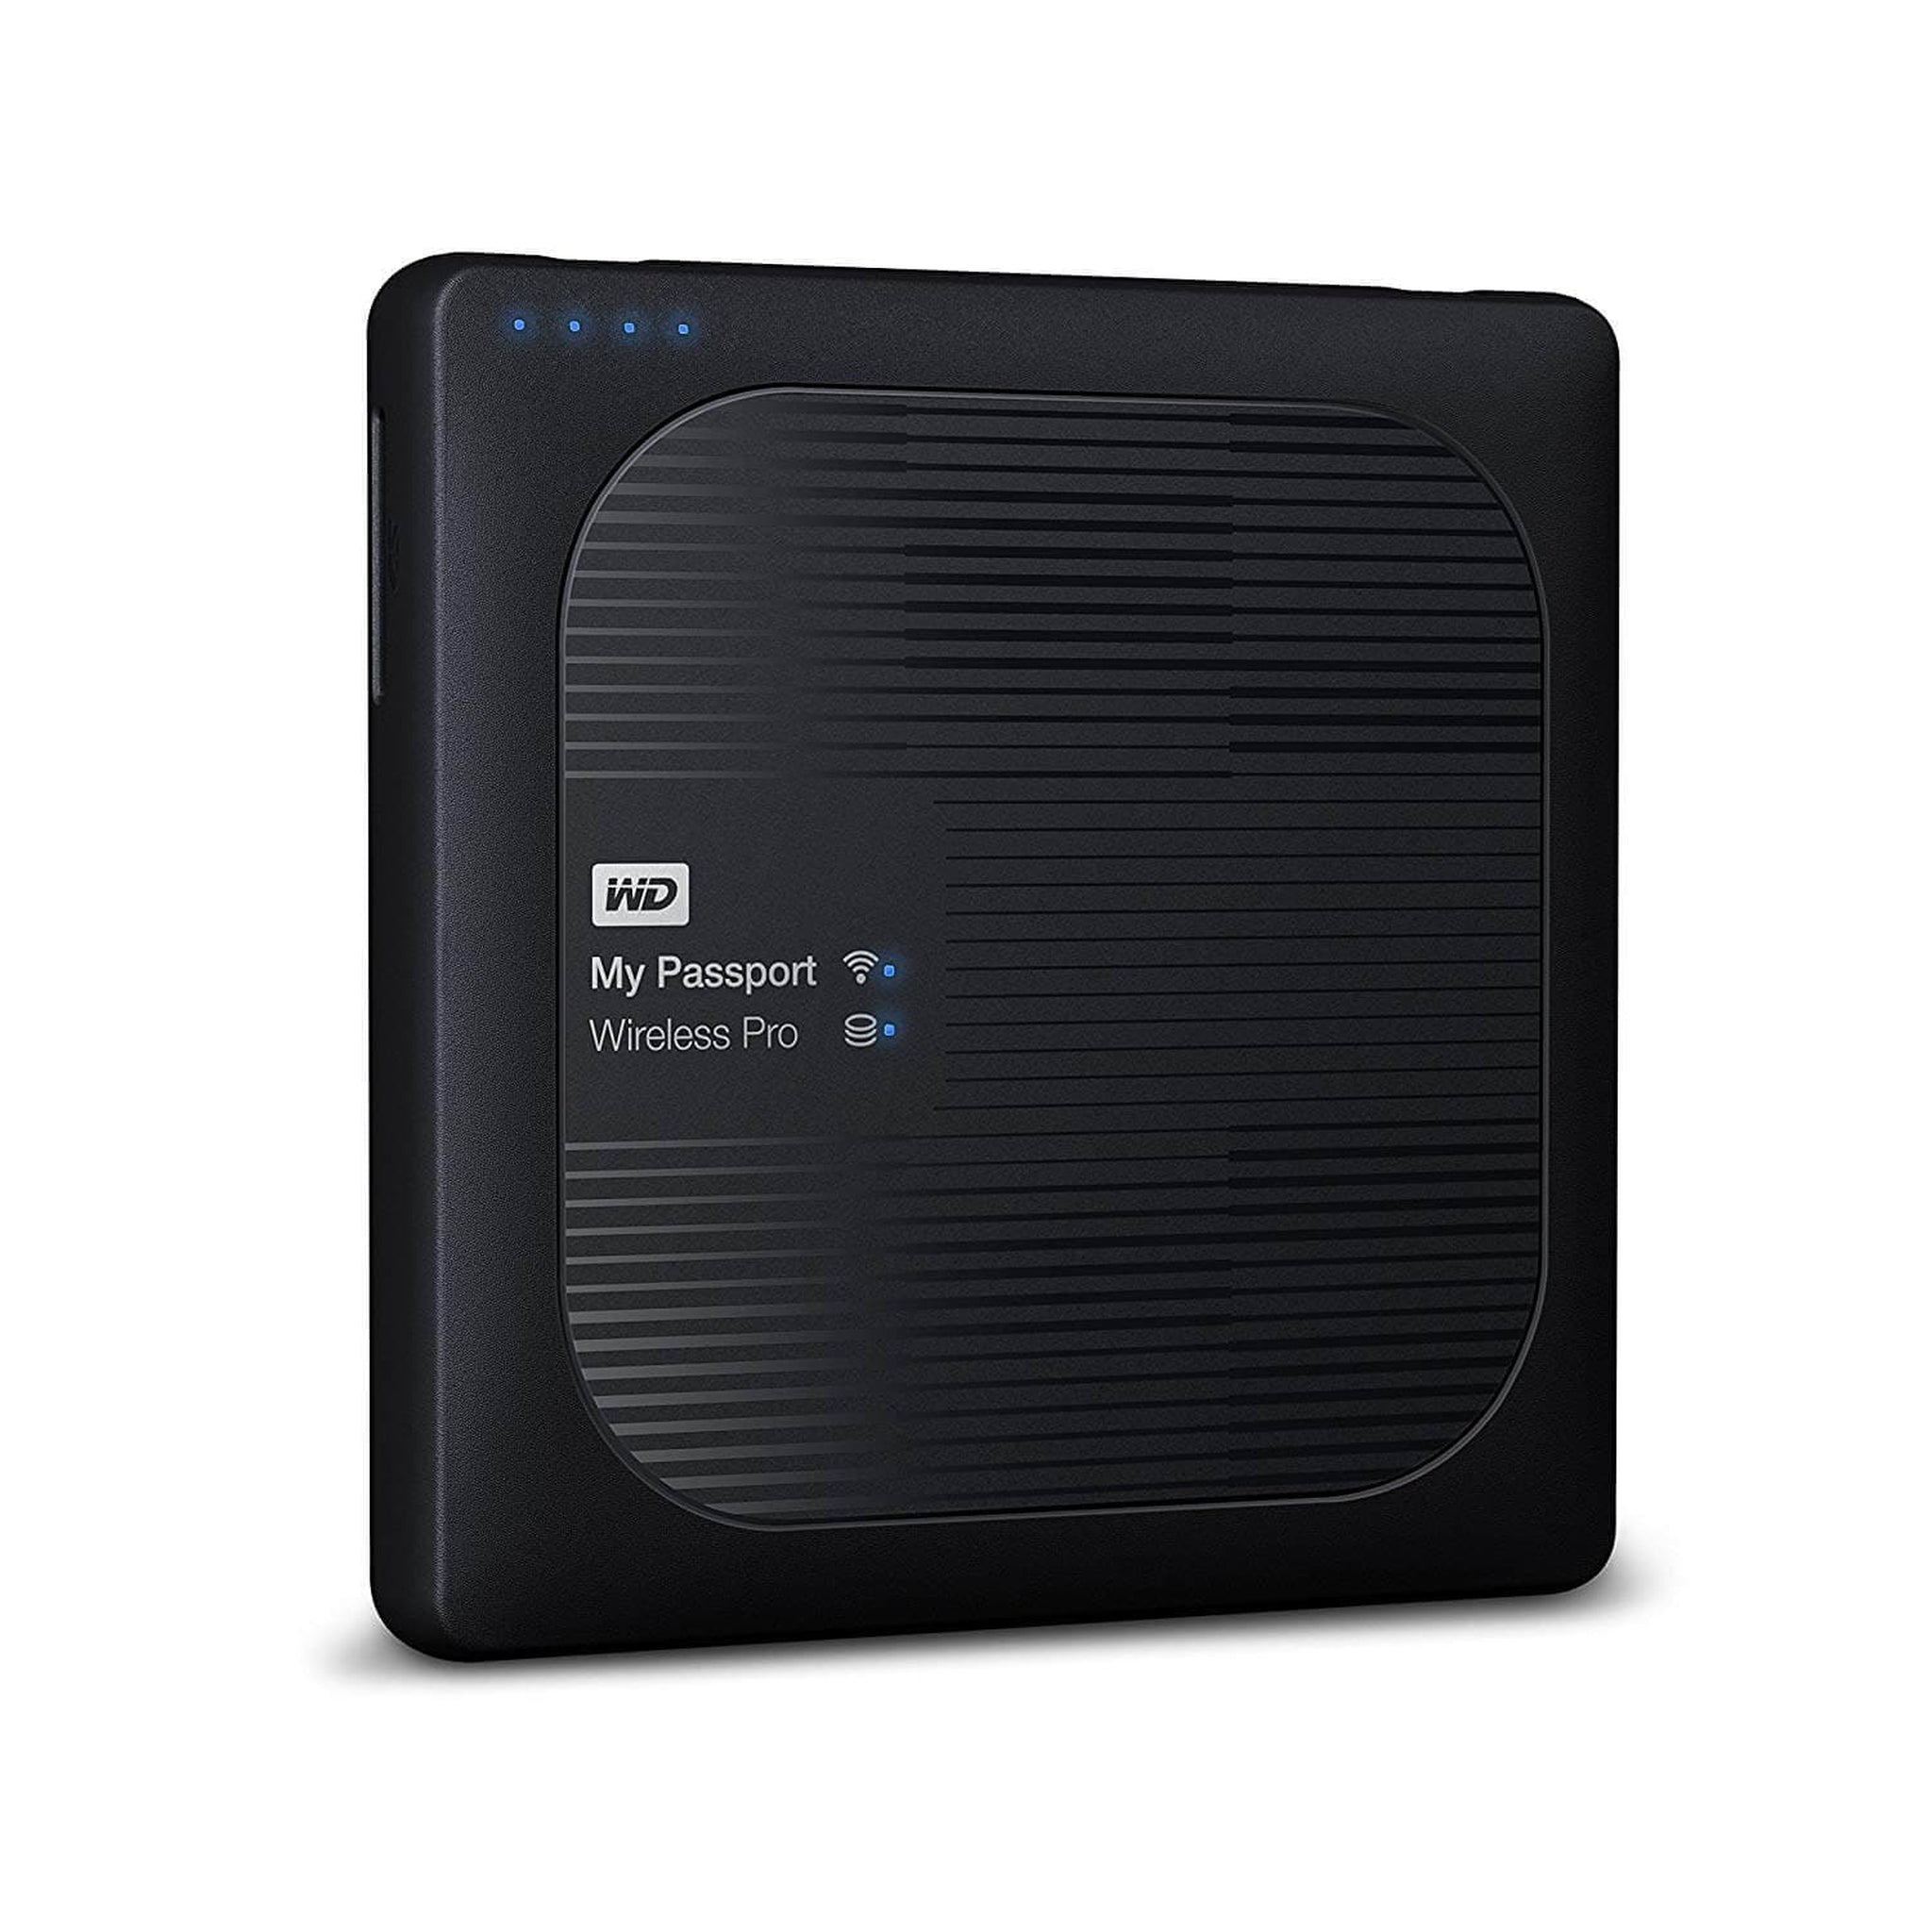 WD 3TB My Passport Wireless Pro Portable - Choice Computer Technologies